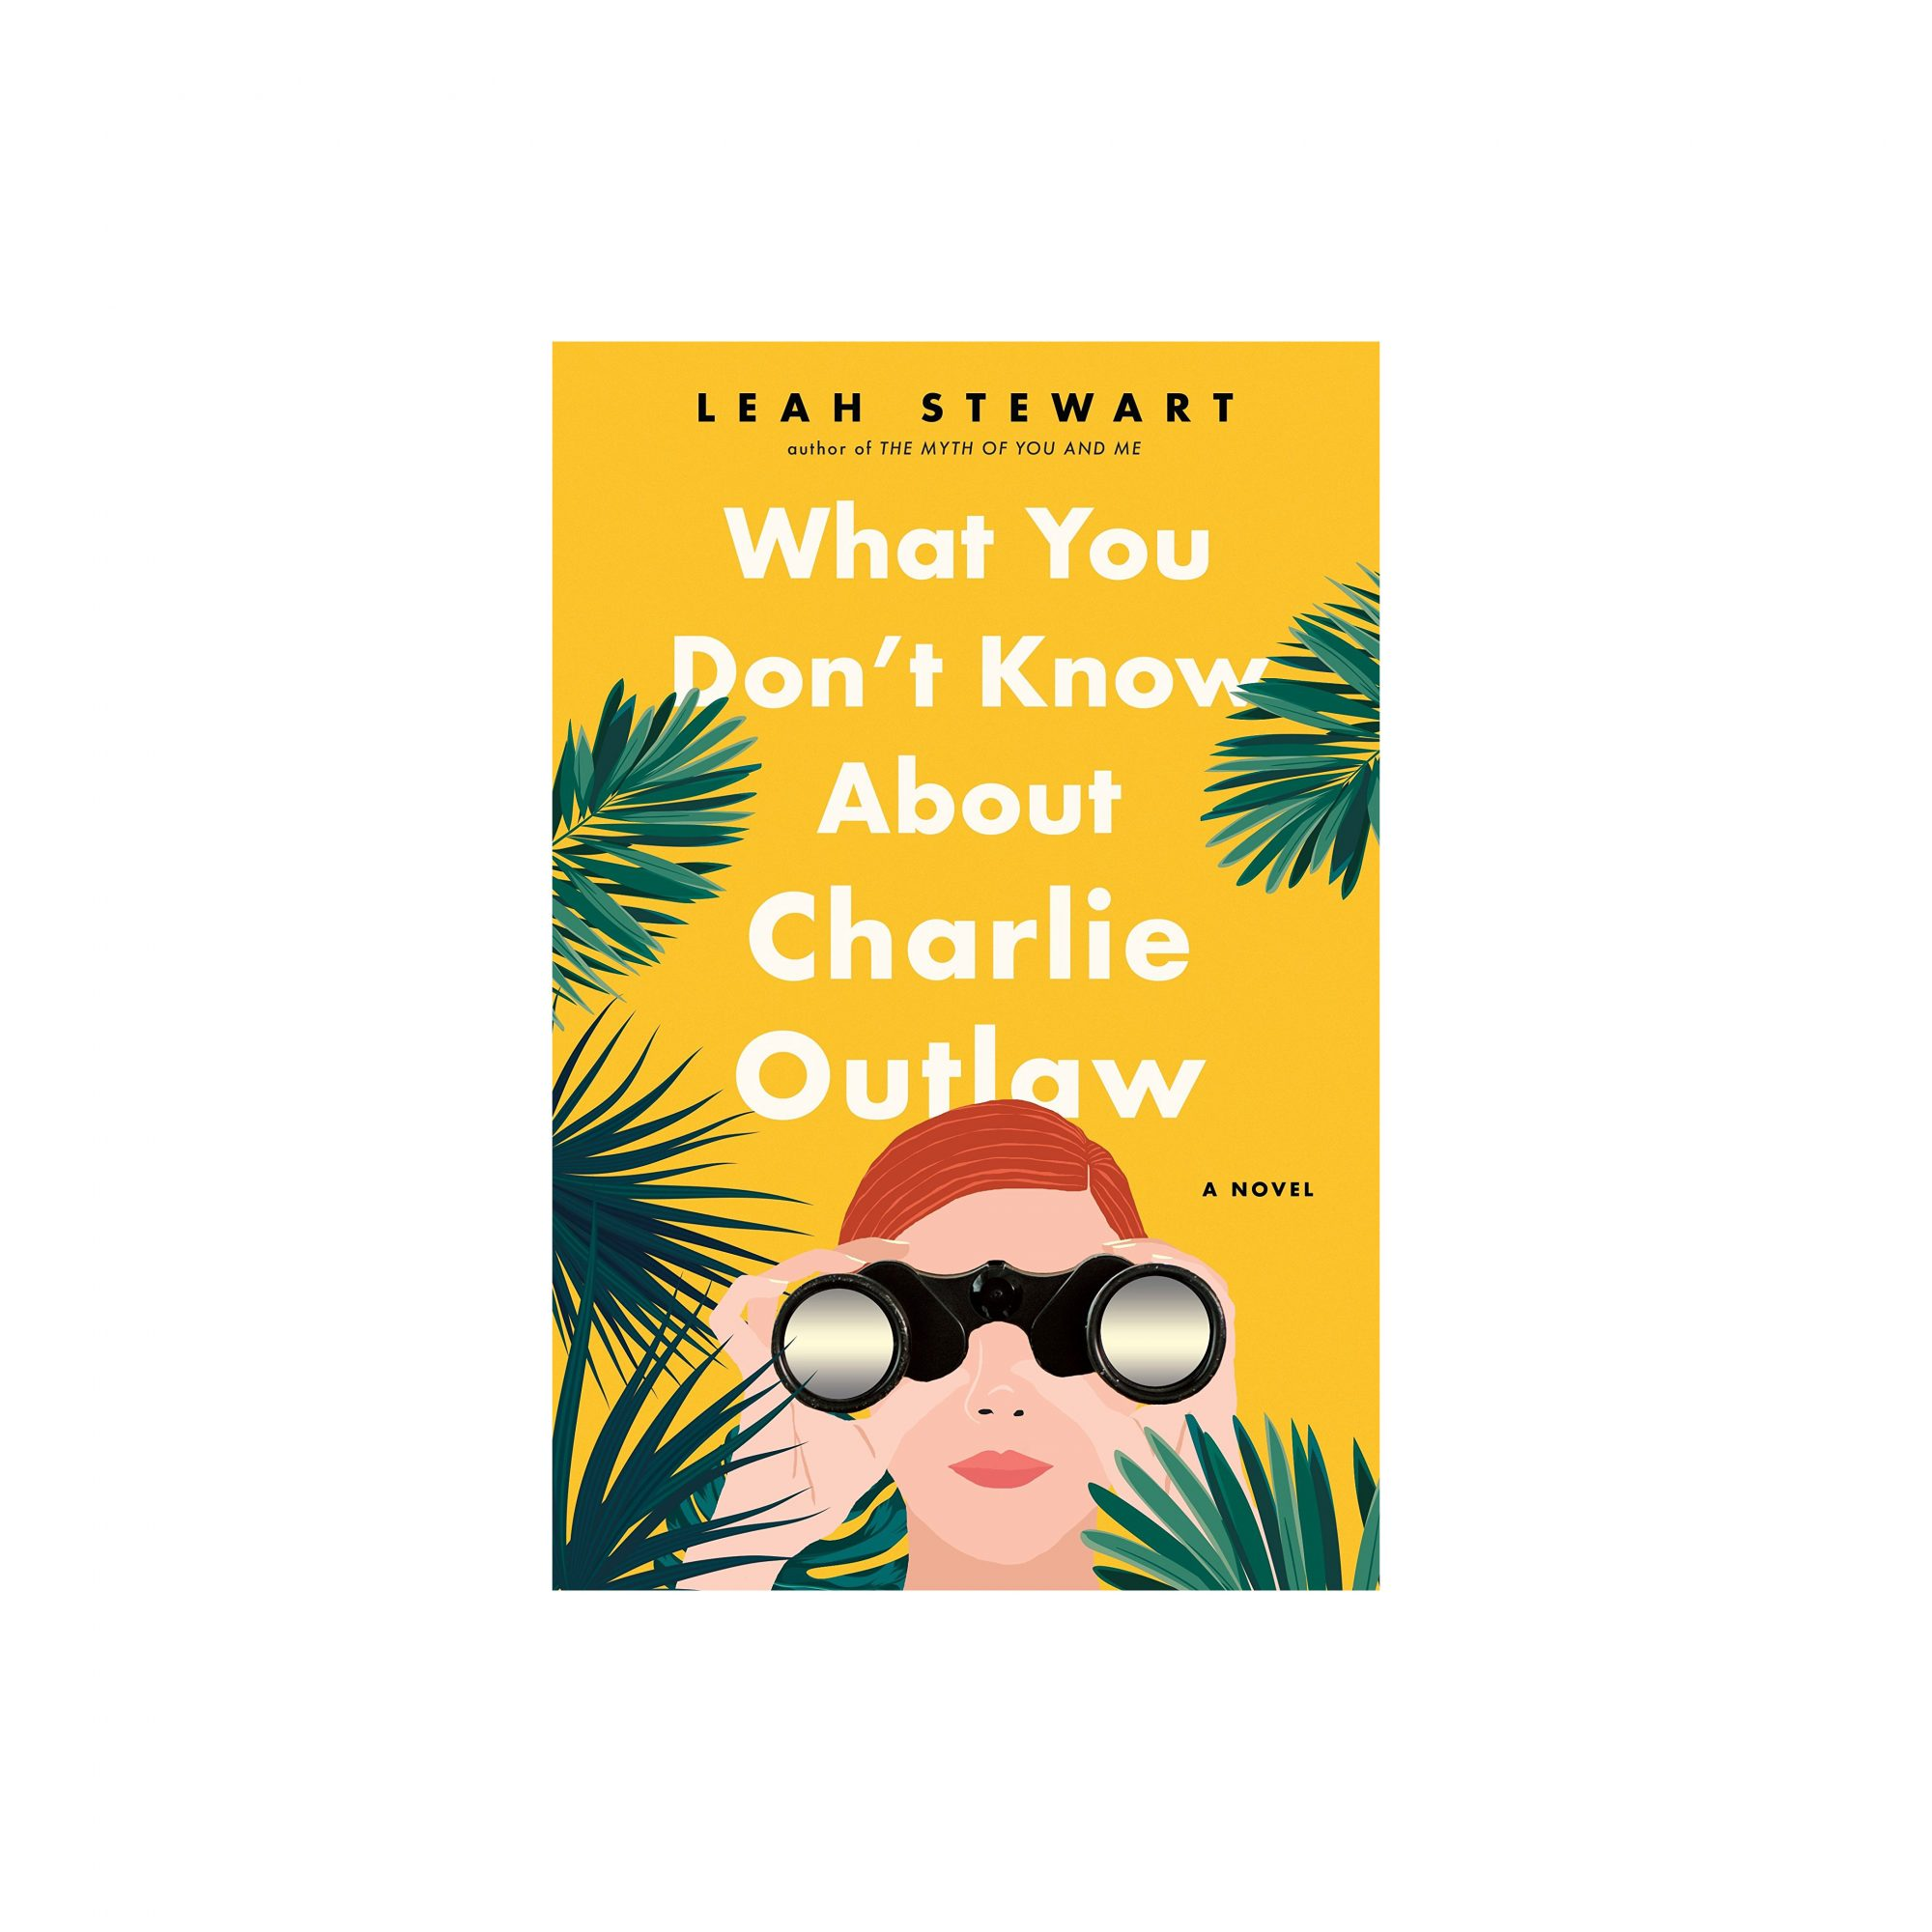 What You Don't Know About About Charlie Outlaw, by Leah Stewart